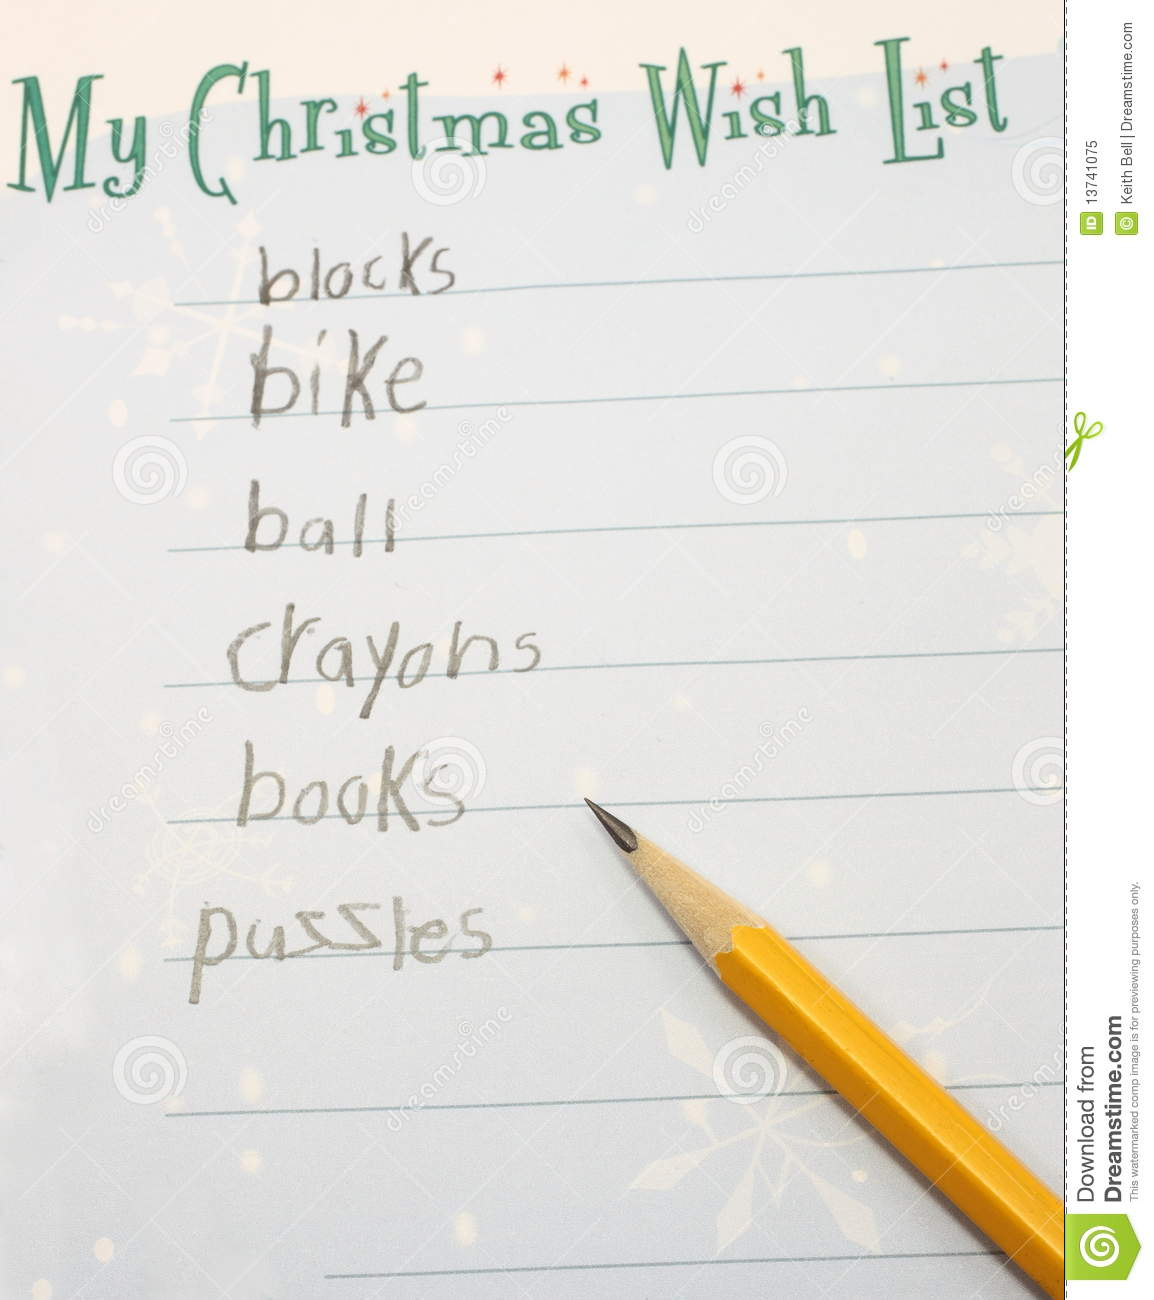 My Christmas List